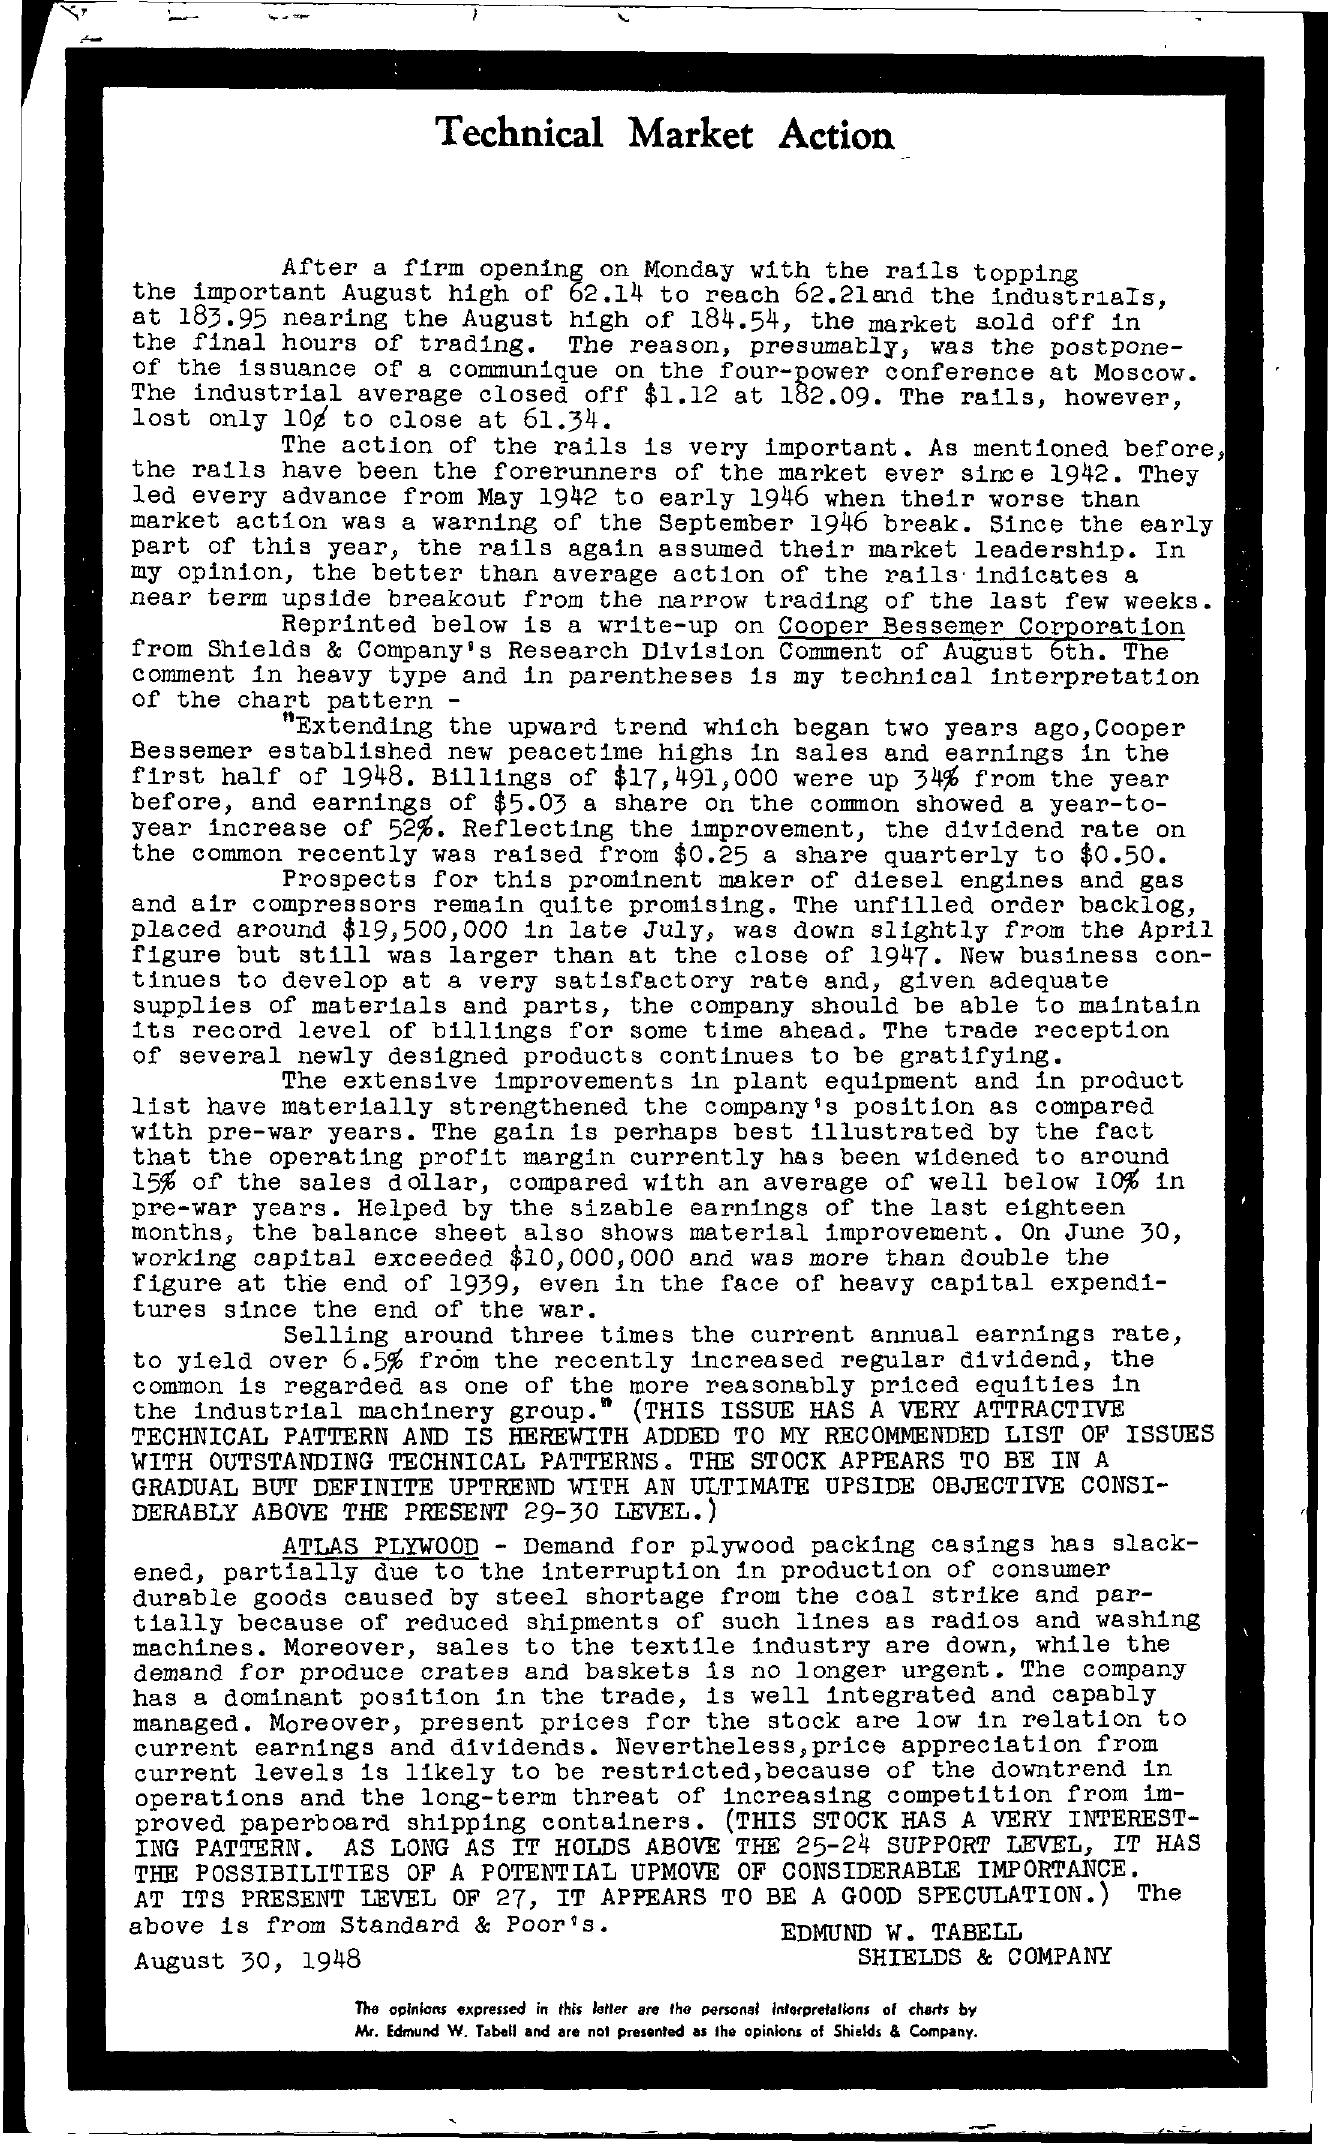 Tabell's Market Letter - August 30, 1948